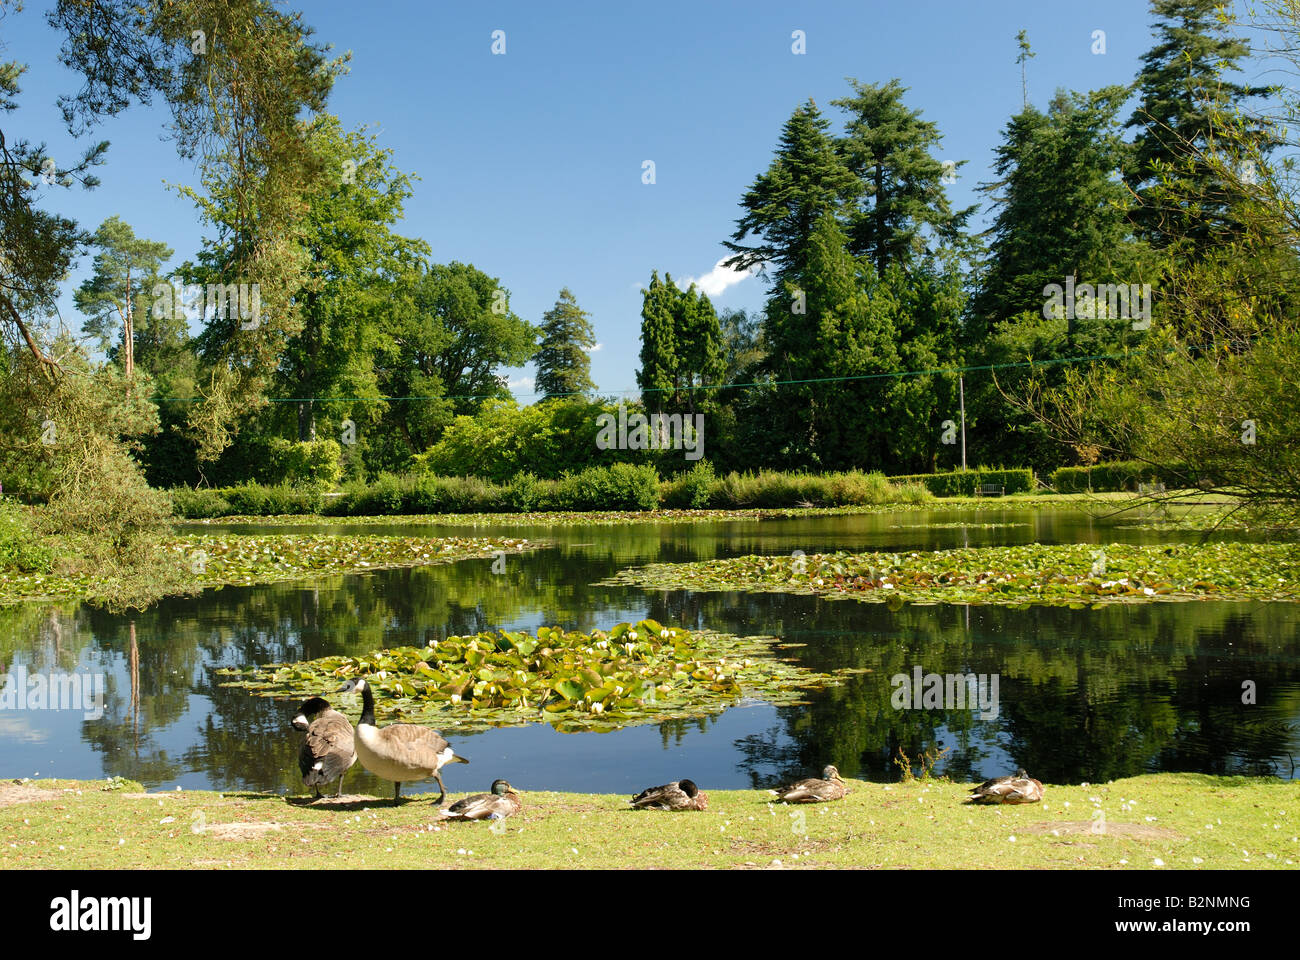 The lake at Bedgebury Pinetum, Kent - Stock Image